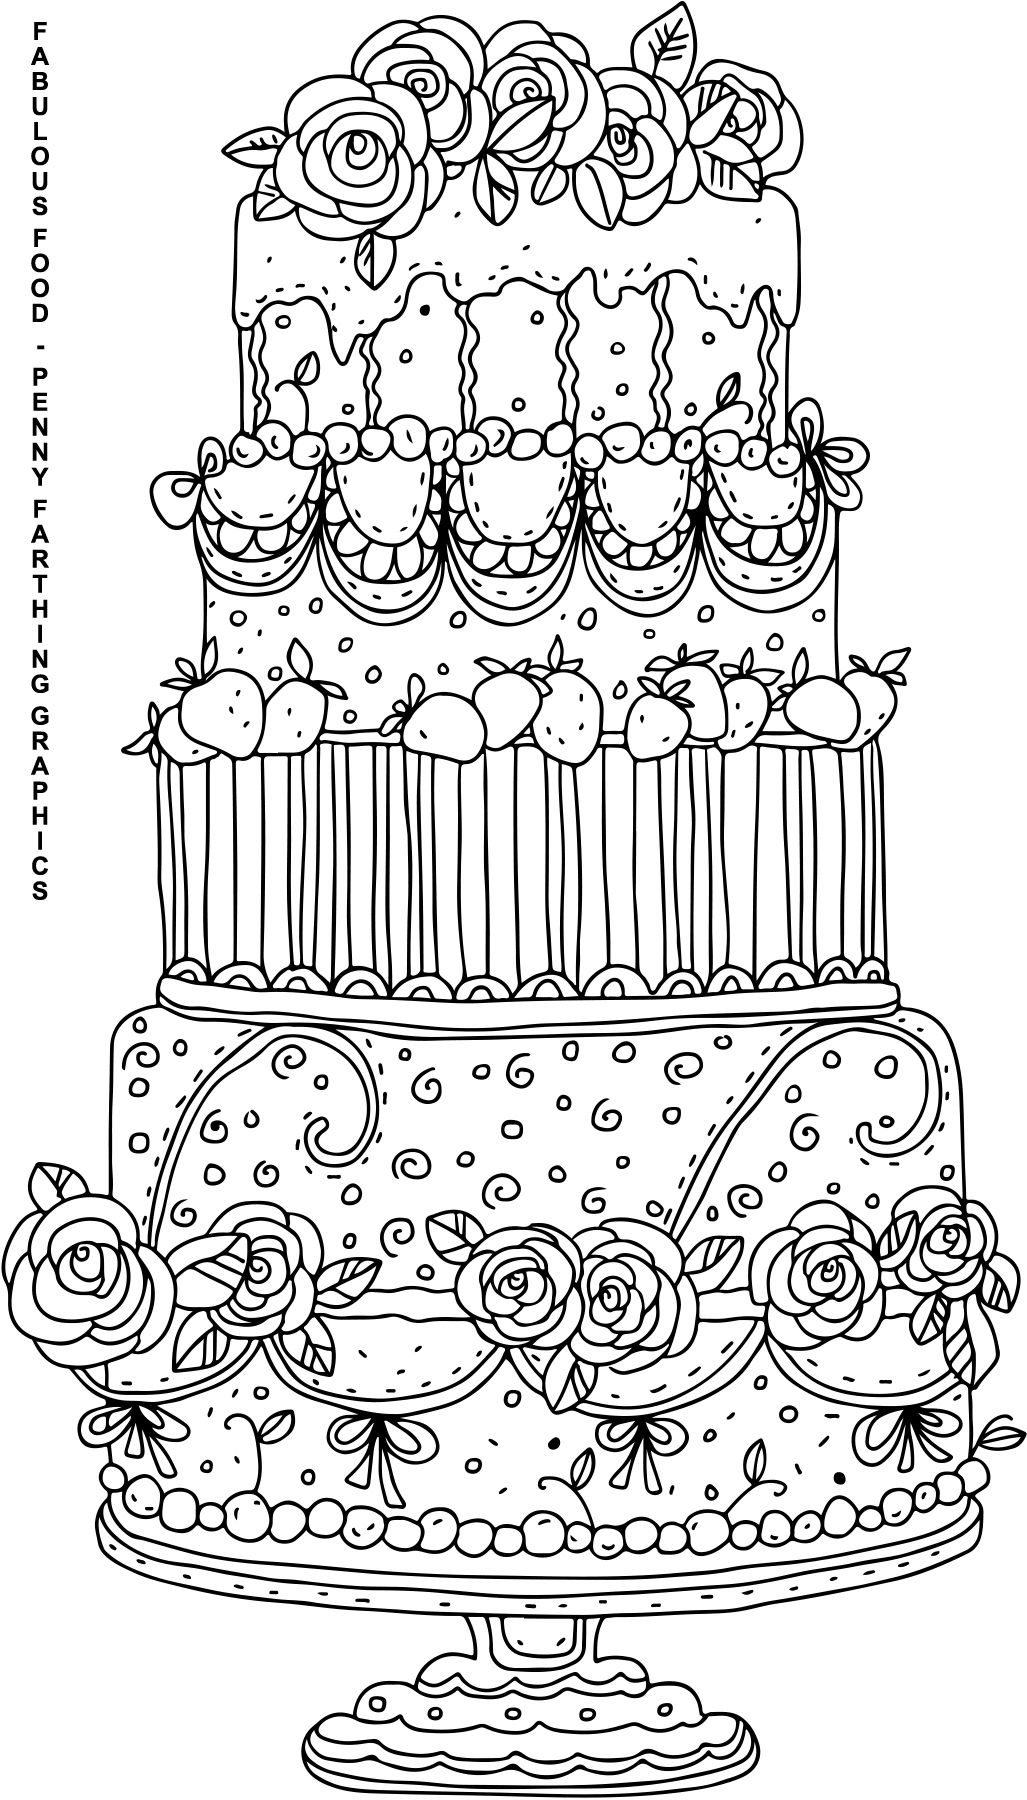 Cake From Fabulous Food Food Coloring Pages Coloring Books Coloring Pages